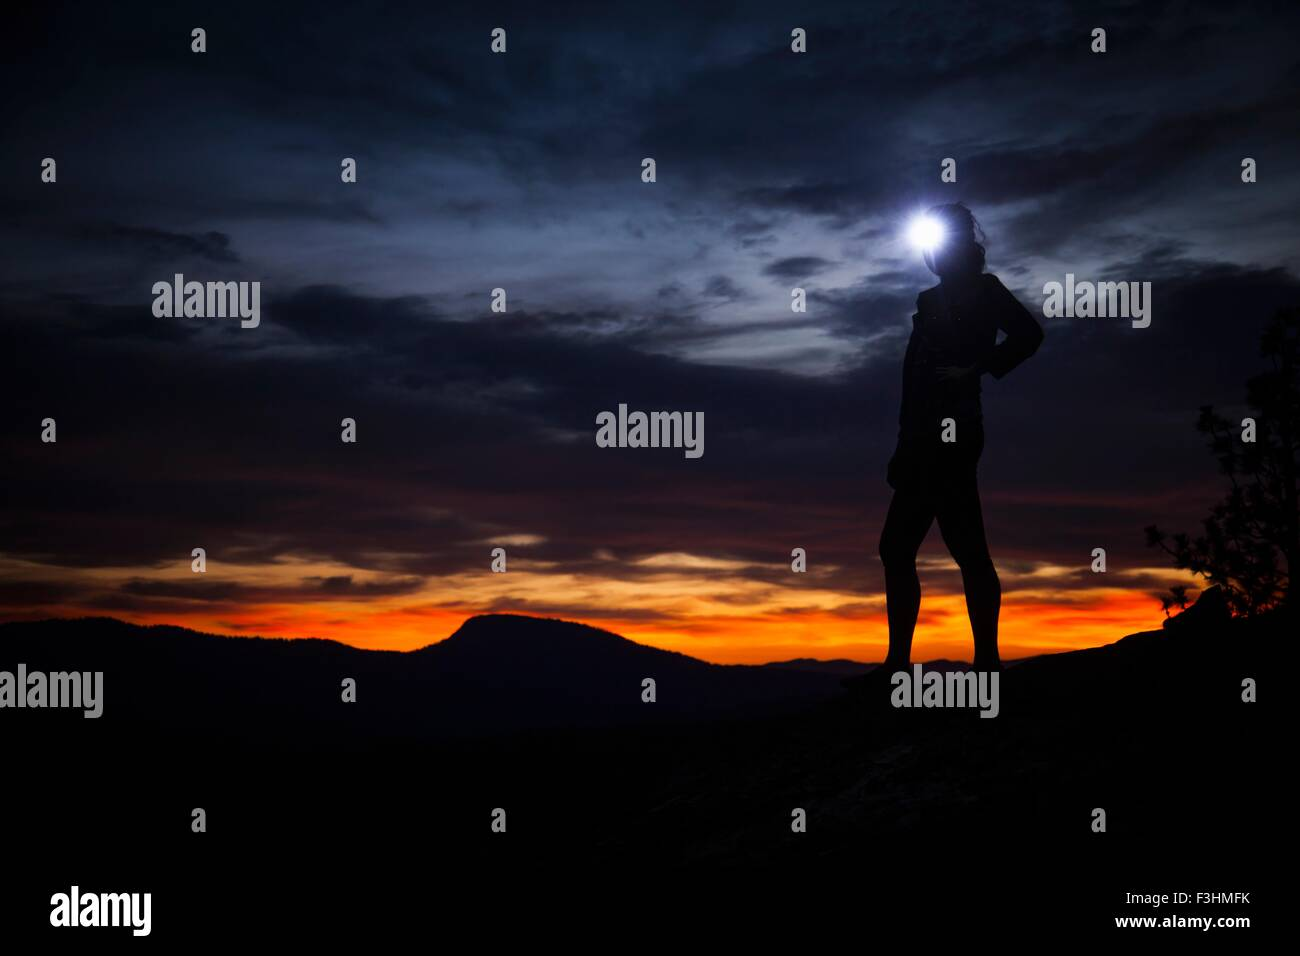 Young woman standing at nights in darkness wearing headlamp - Stock Image